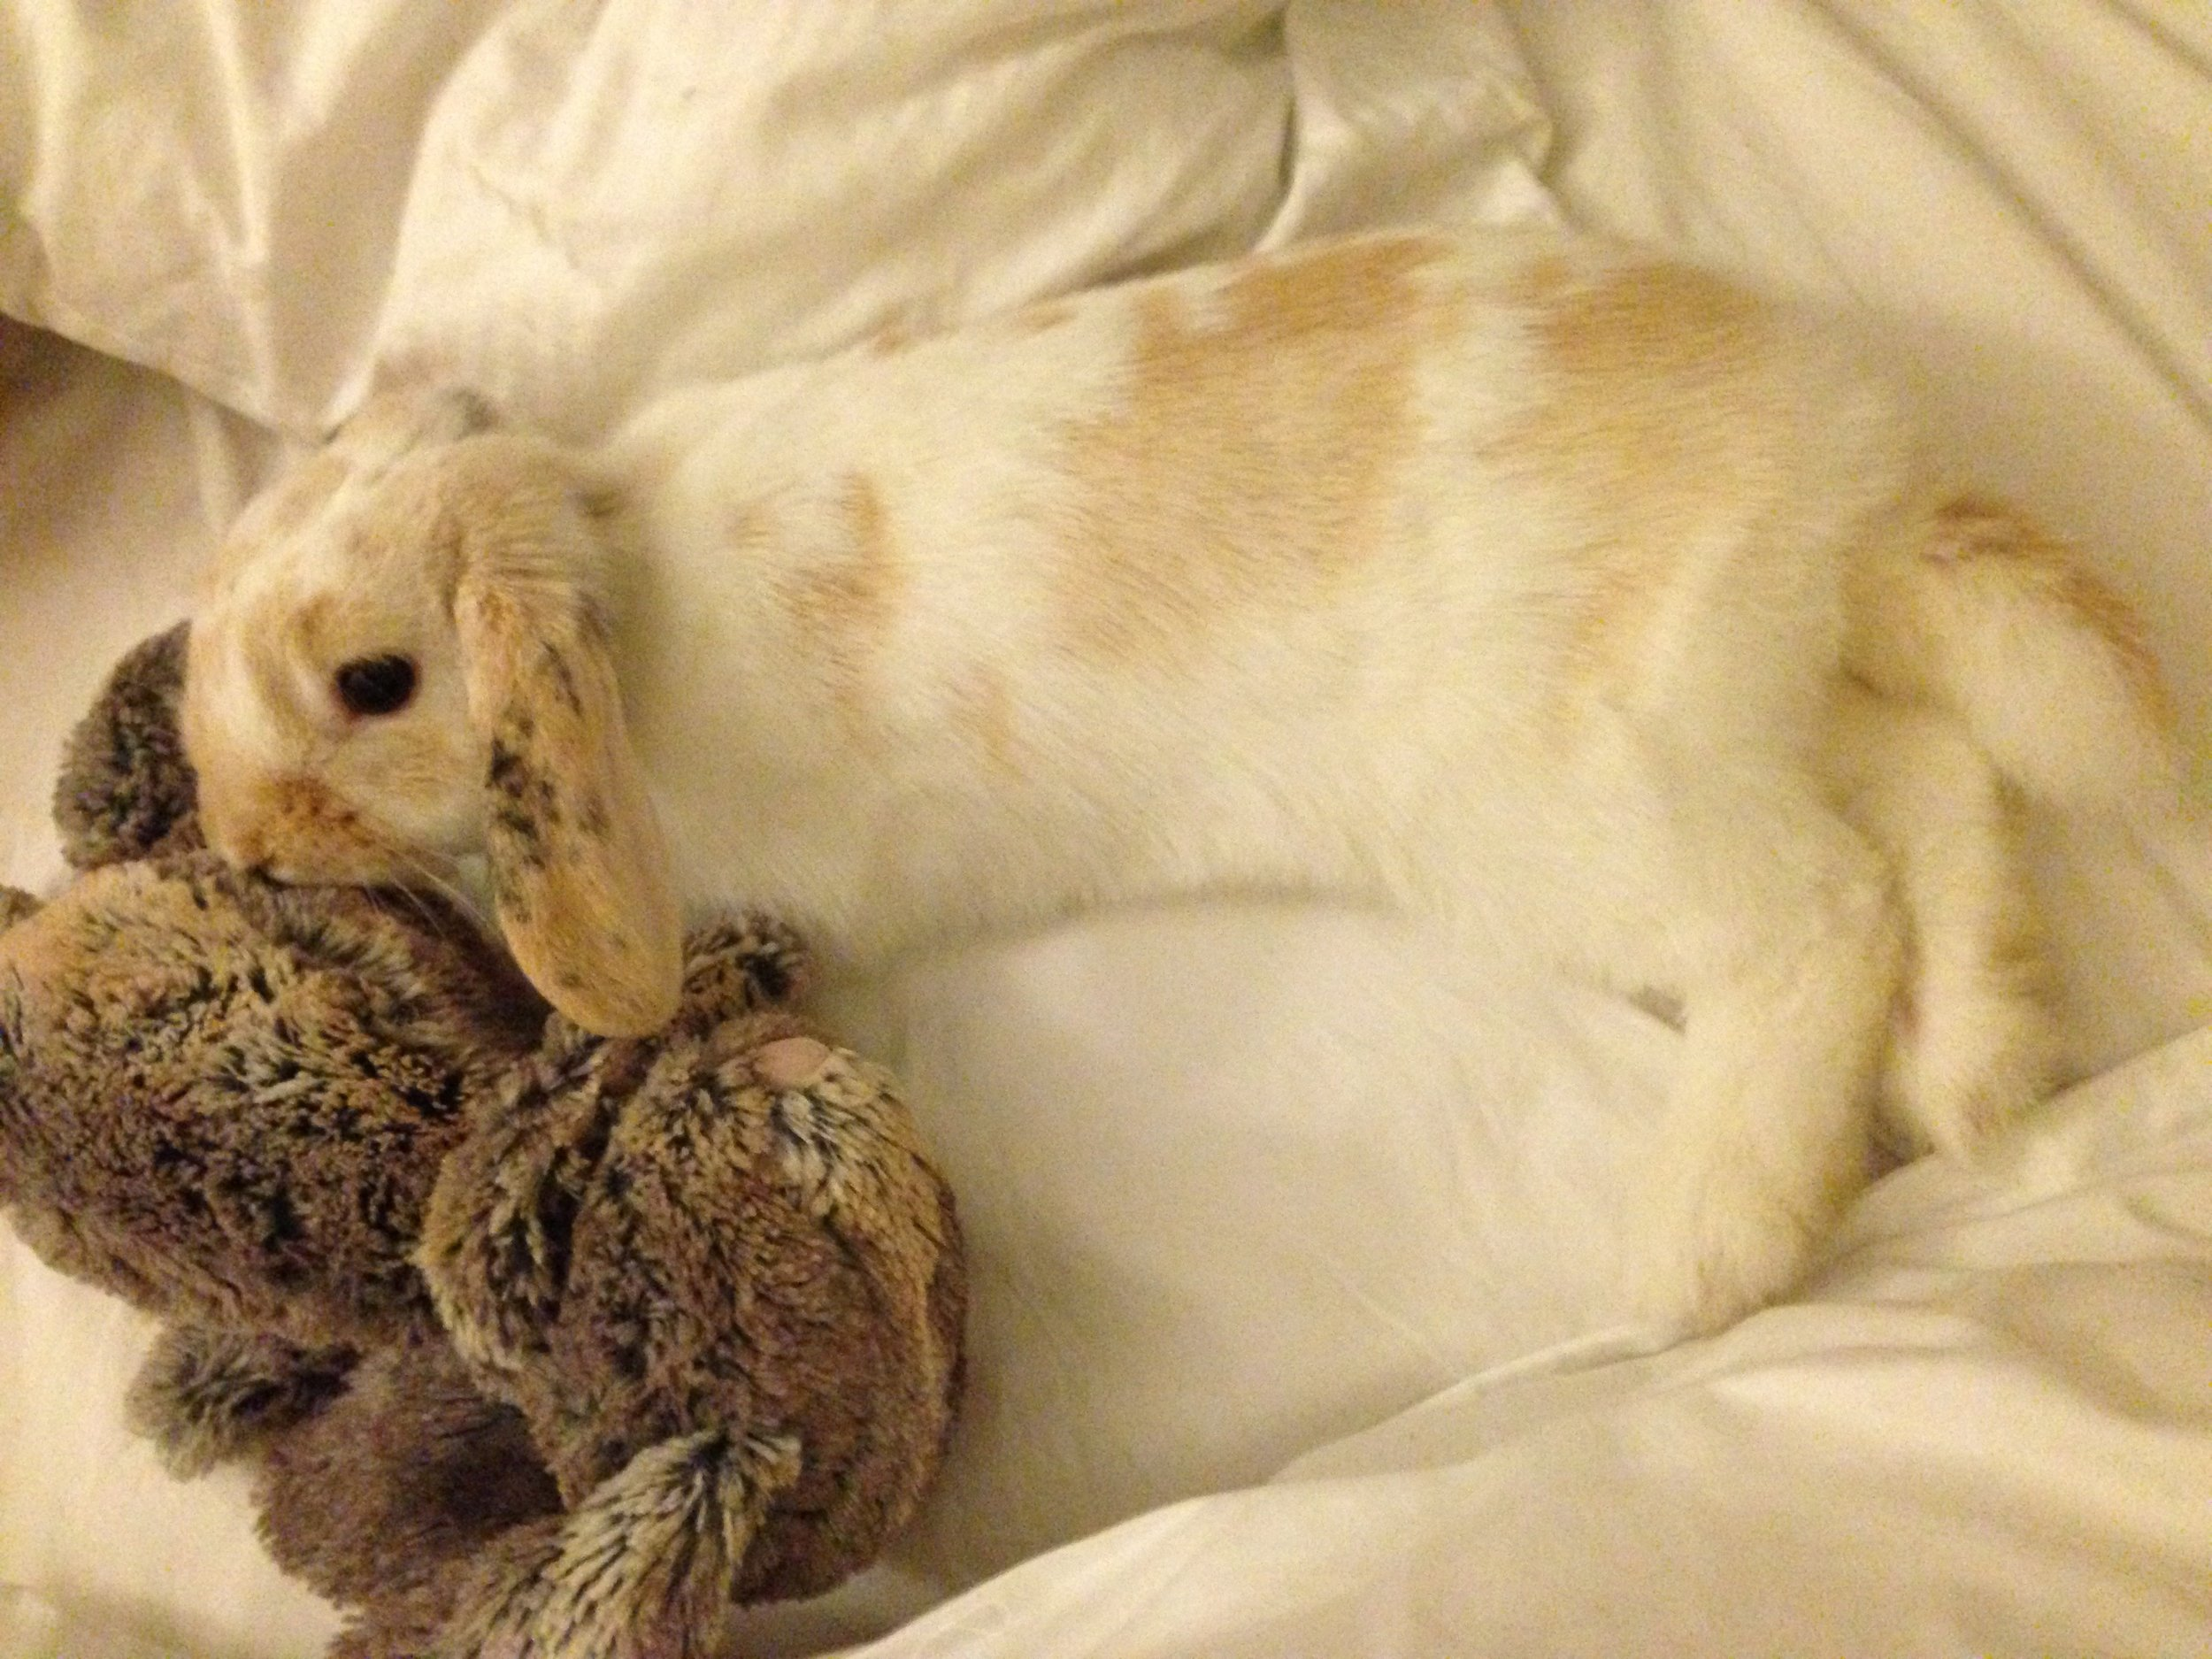 Bunny Hangs Out with Some Plush Friends 3